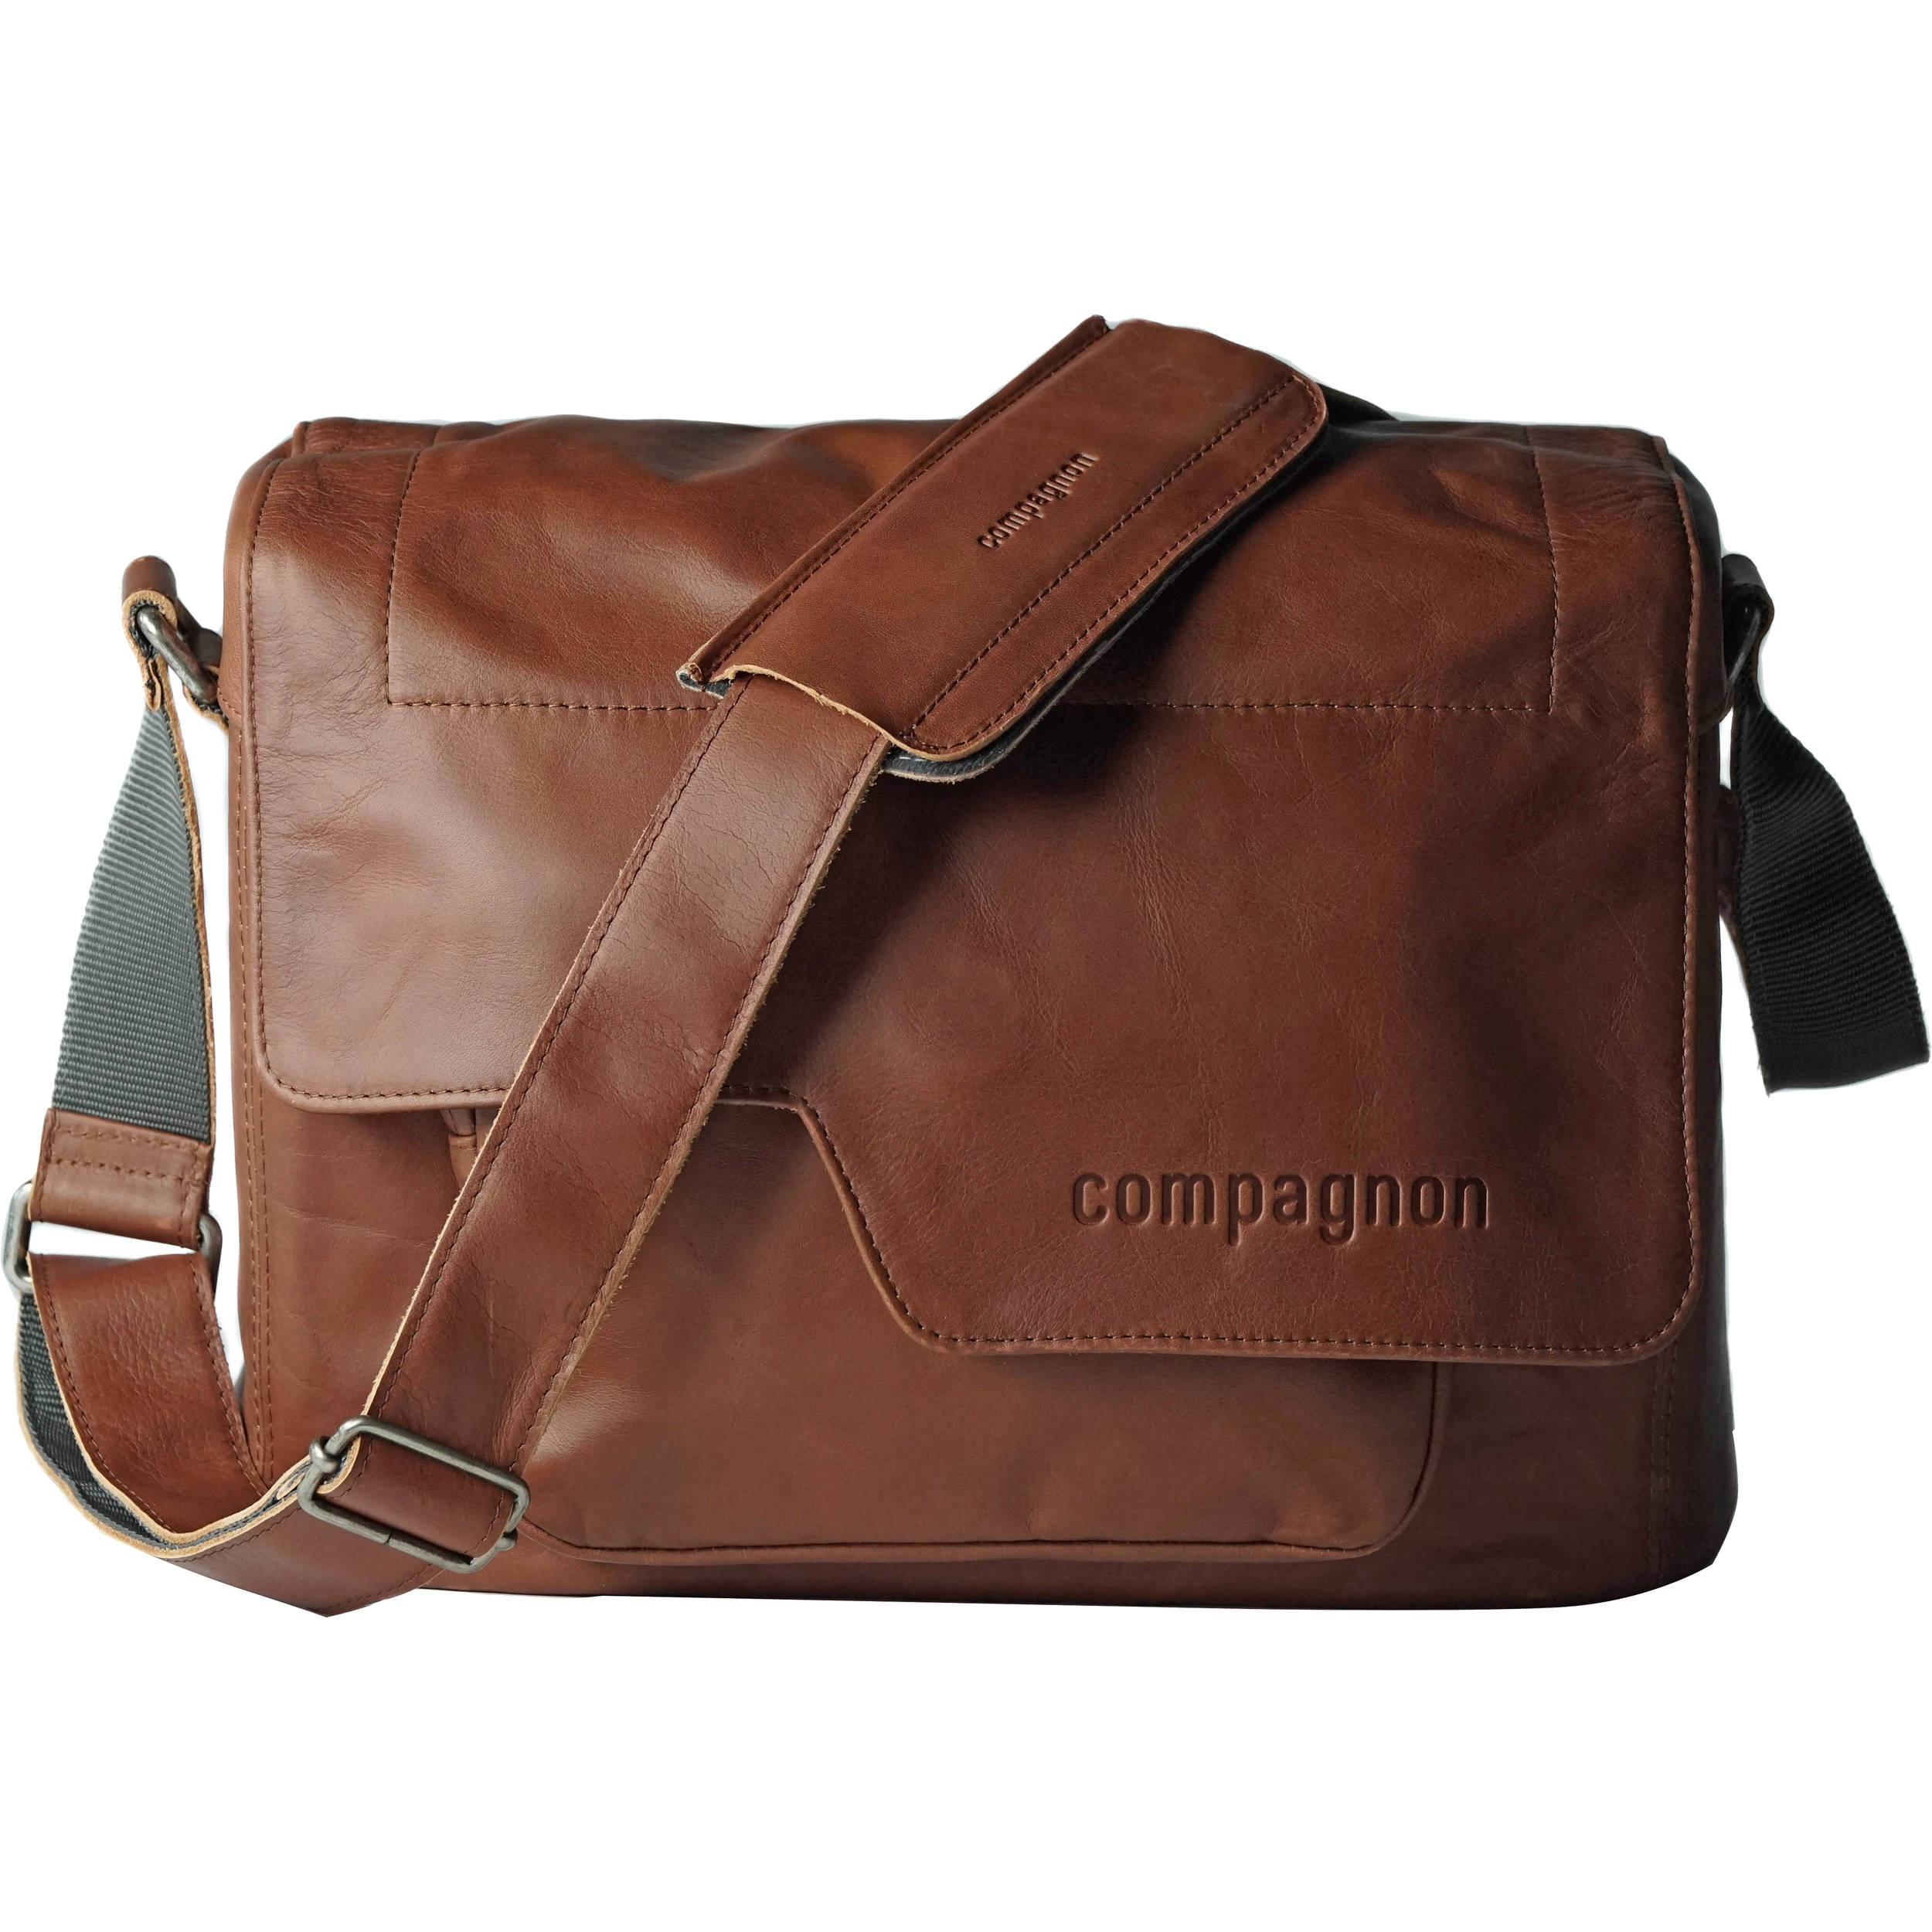 Compagnon The Medium Messenger Leather Camera Bag Light